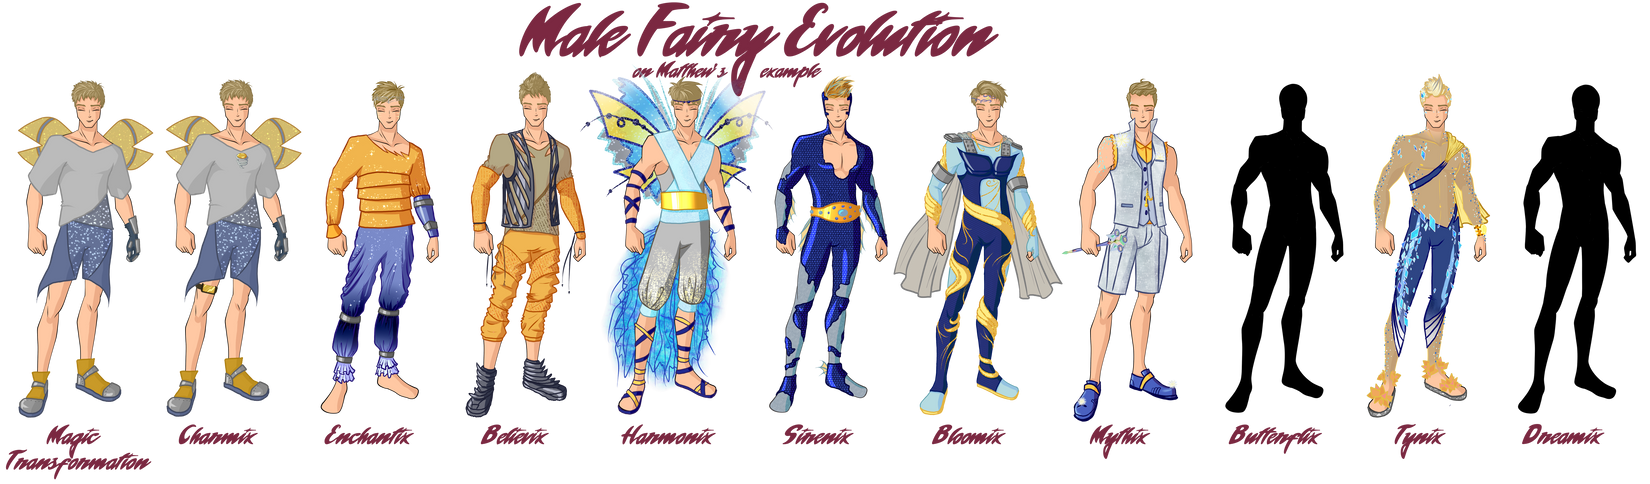 Male Fairy Evolution by TheDamnedFairy on DeviantArt